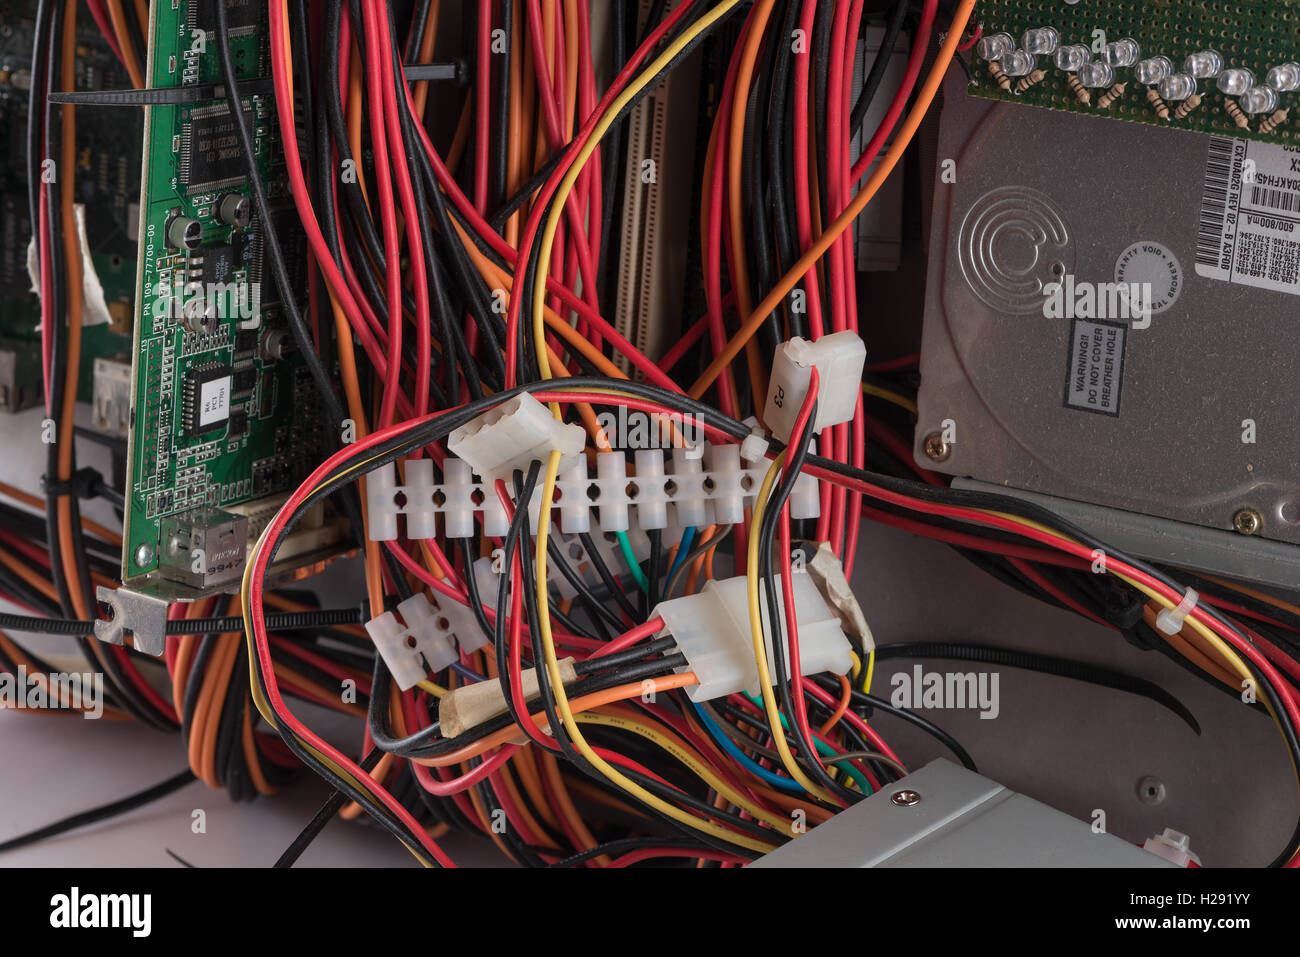 hard wiring a circuit board wiring diagram for you • masses of colored computer wires circuit board and harddrive rh alamy com circuit board pcb circuit board wiring gifs